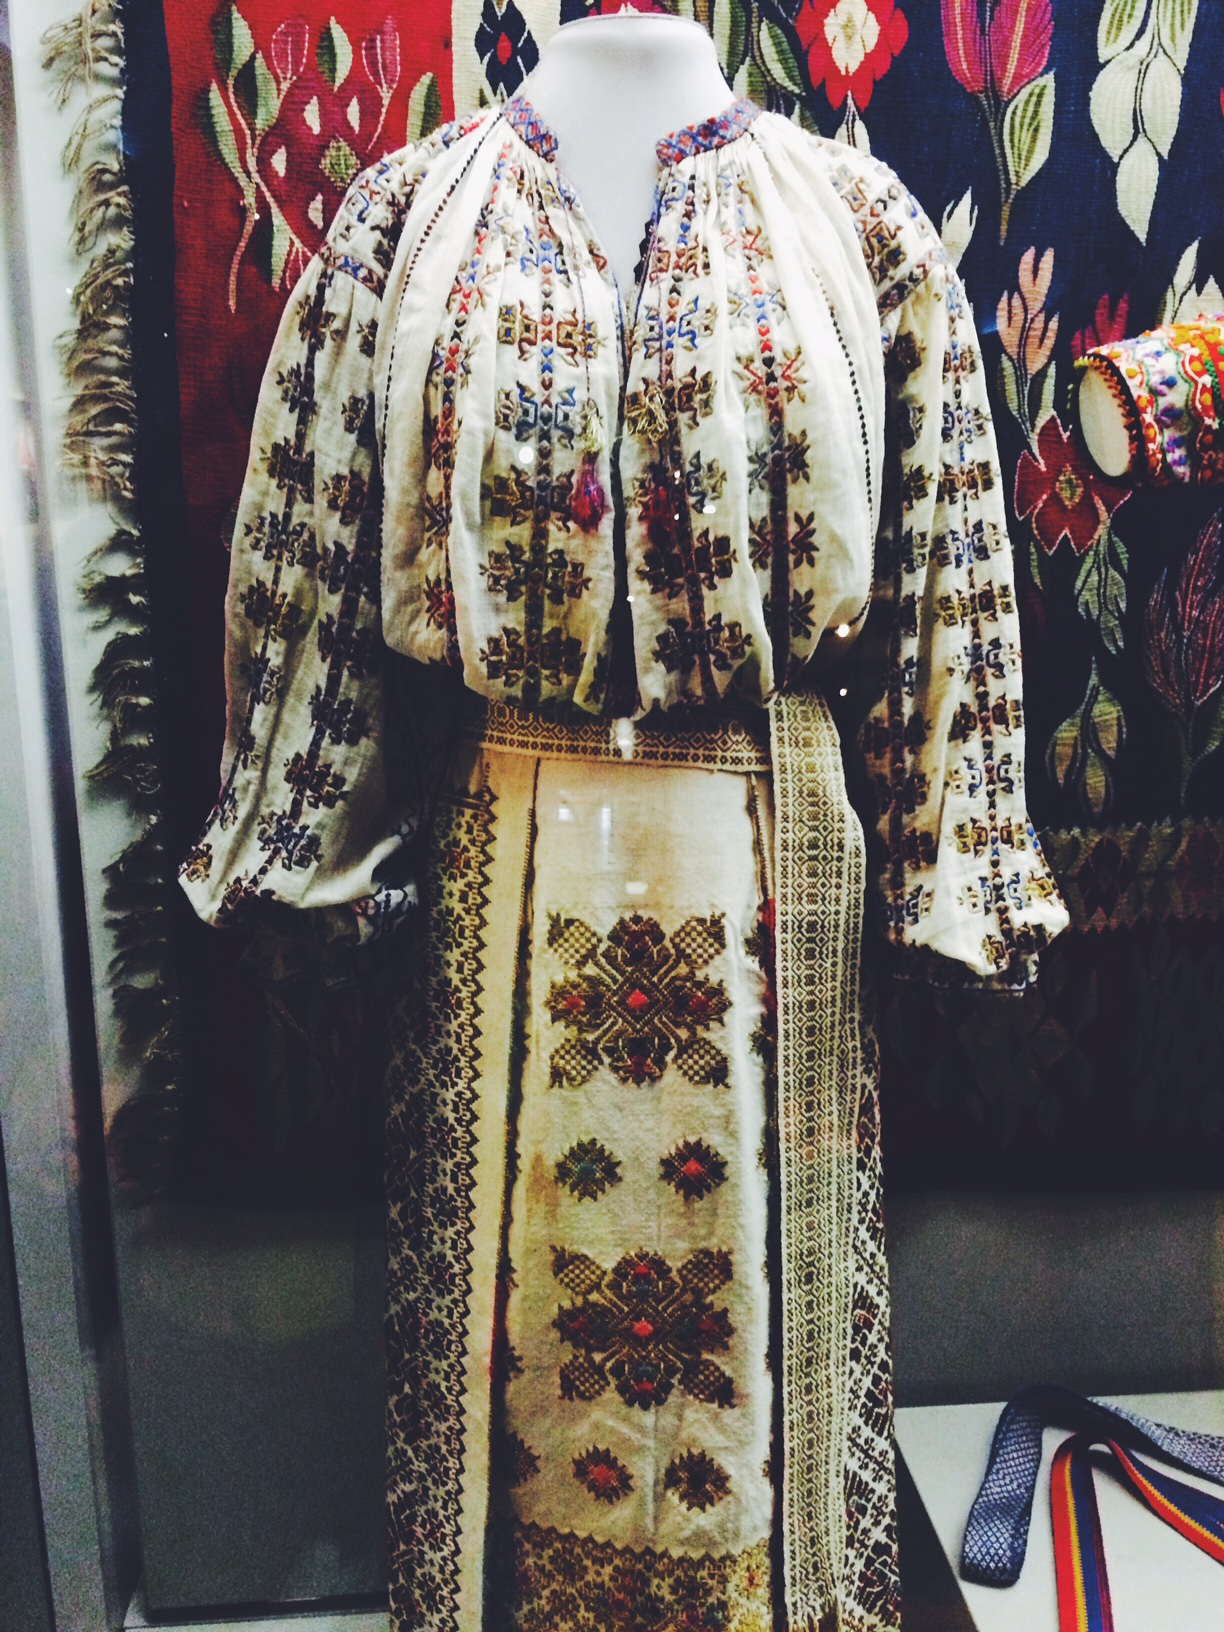 Revisiting Romania: Dress and Identity